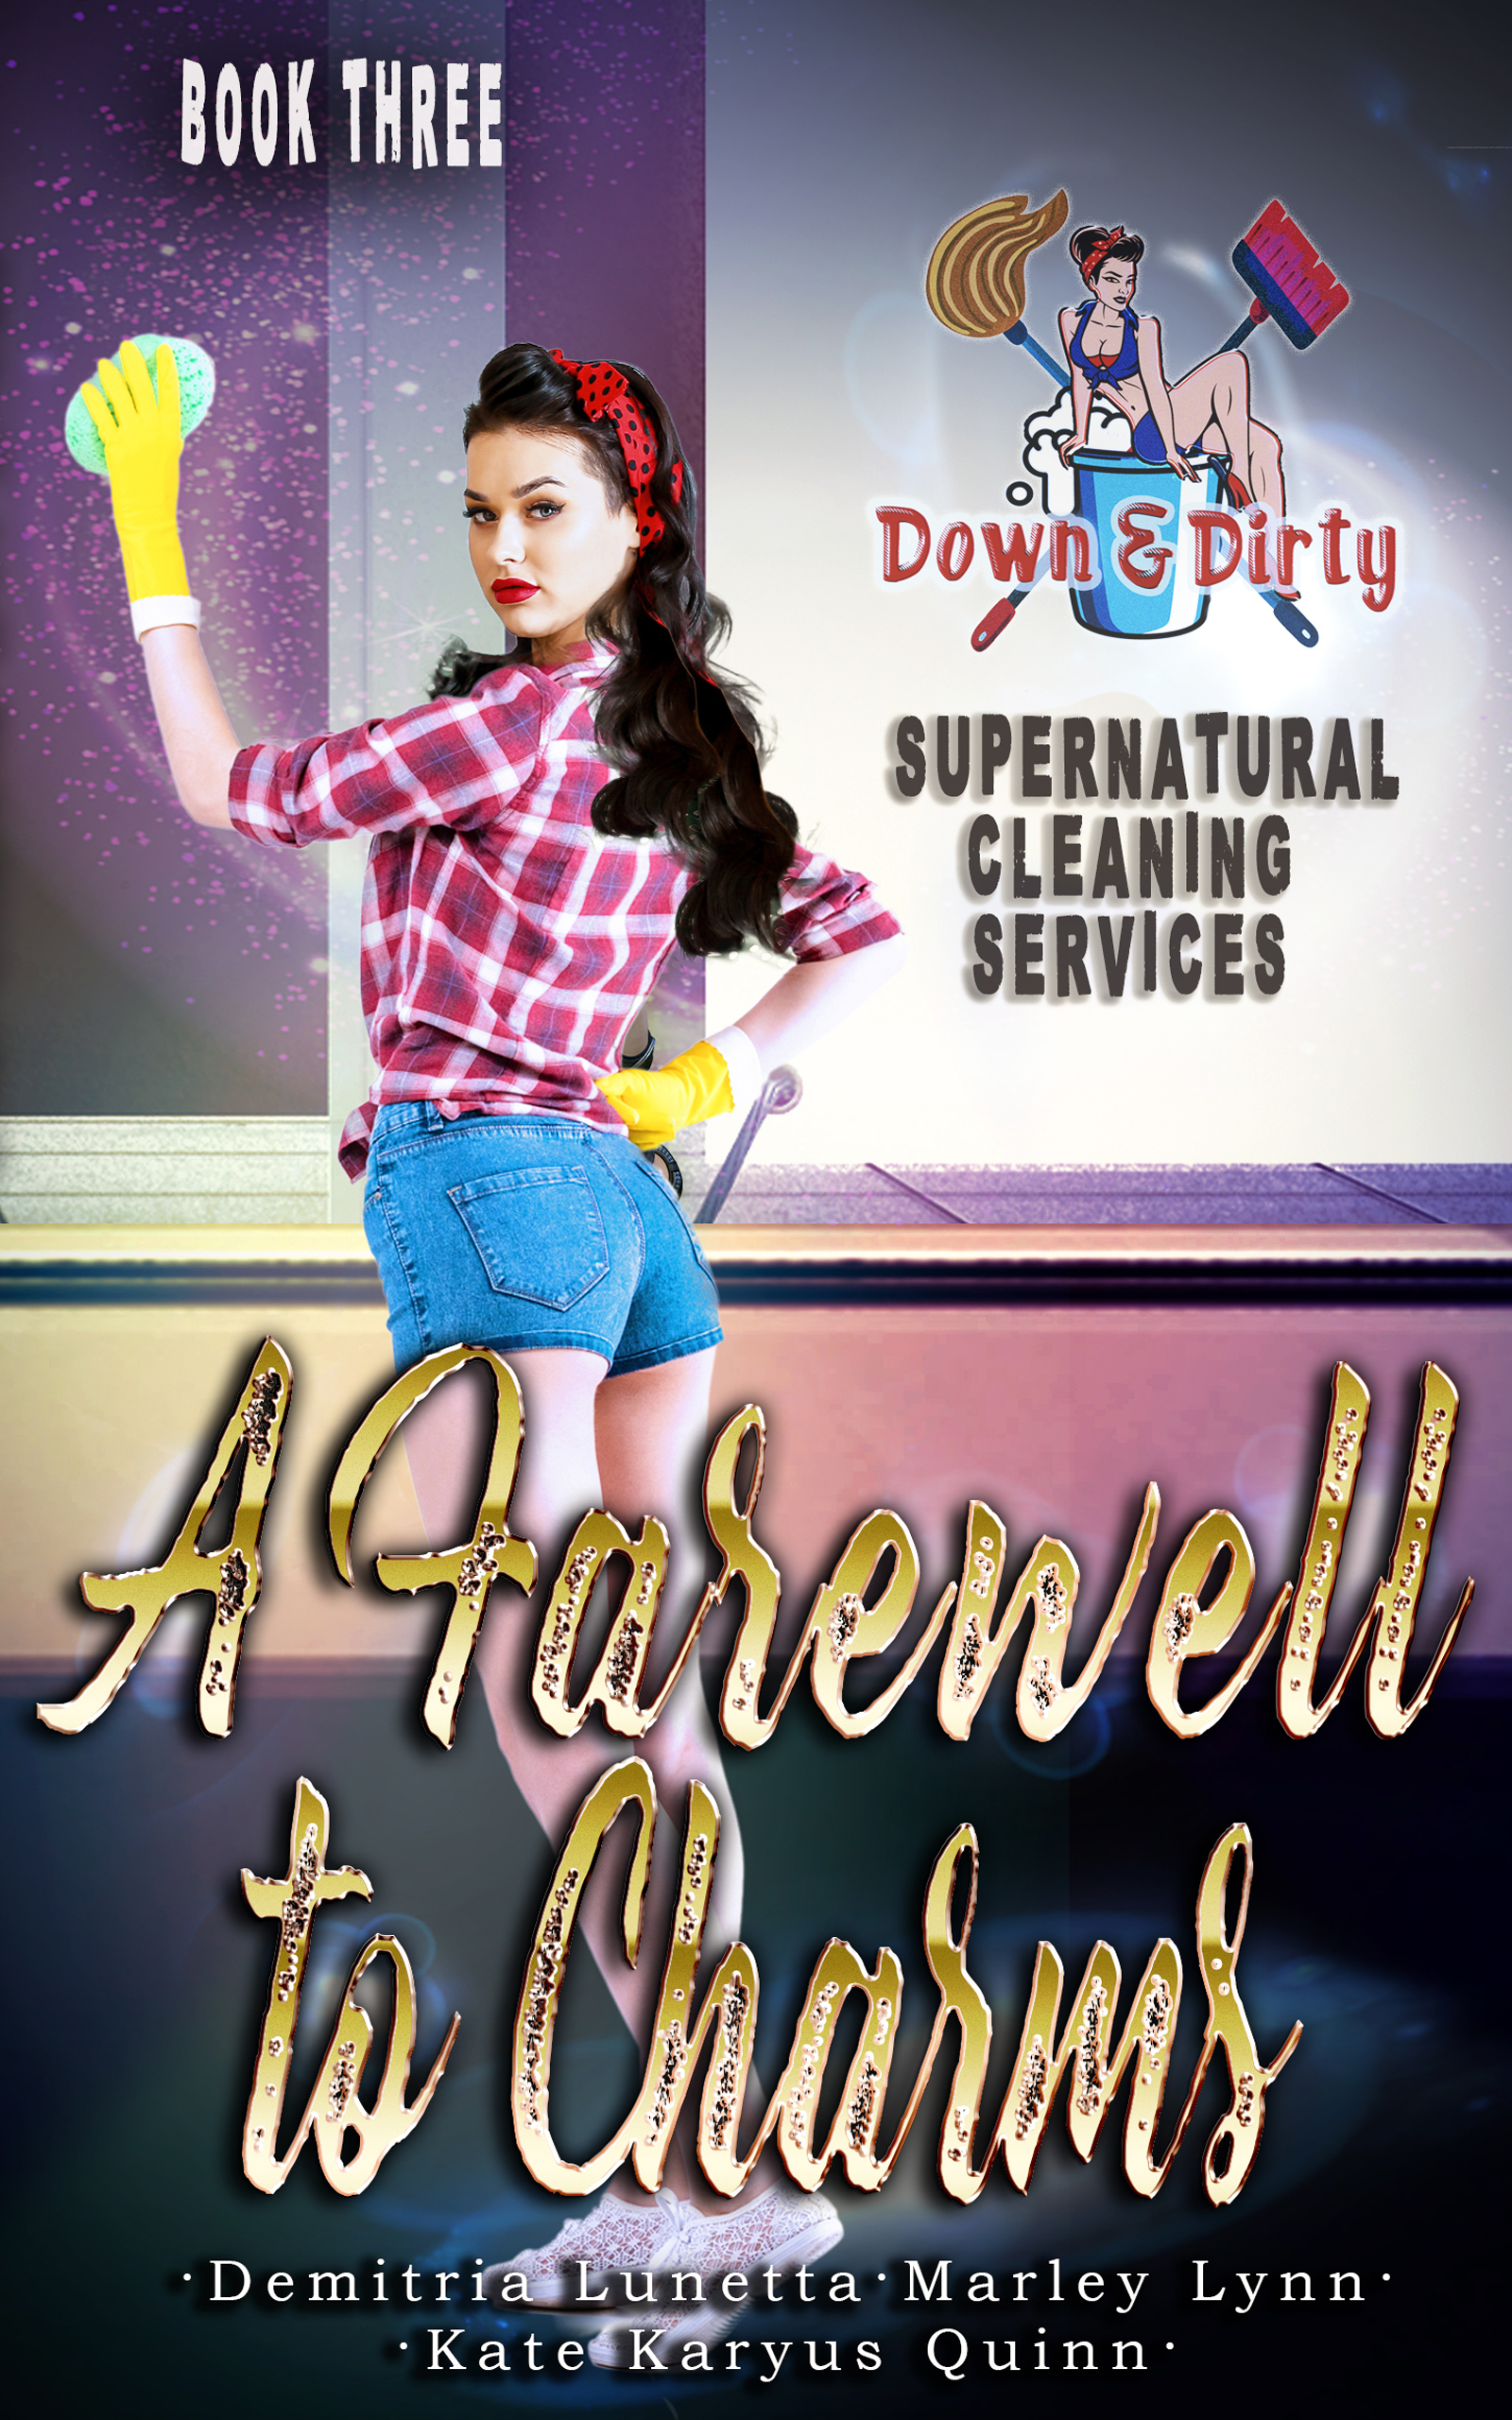 [PDF] [EPUB] A Farewell to Charms (Down and Dirty Supernatural Cleaning Services #3) Download by Demitria Lunetta